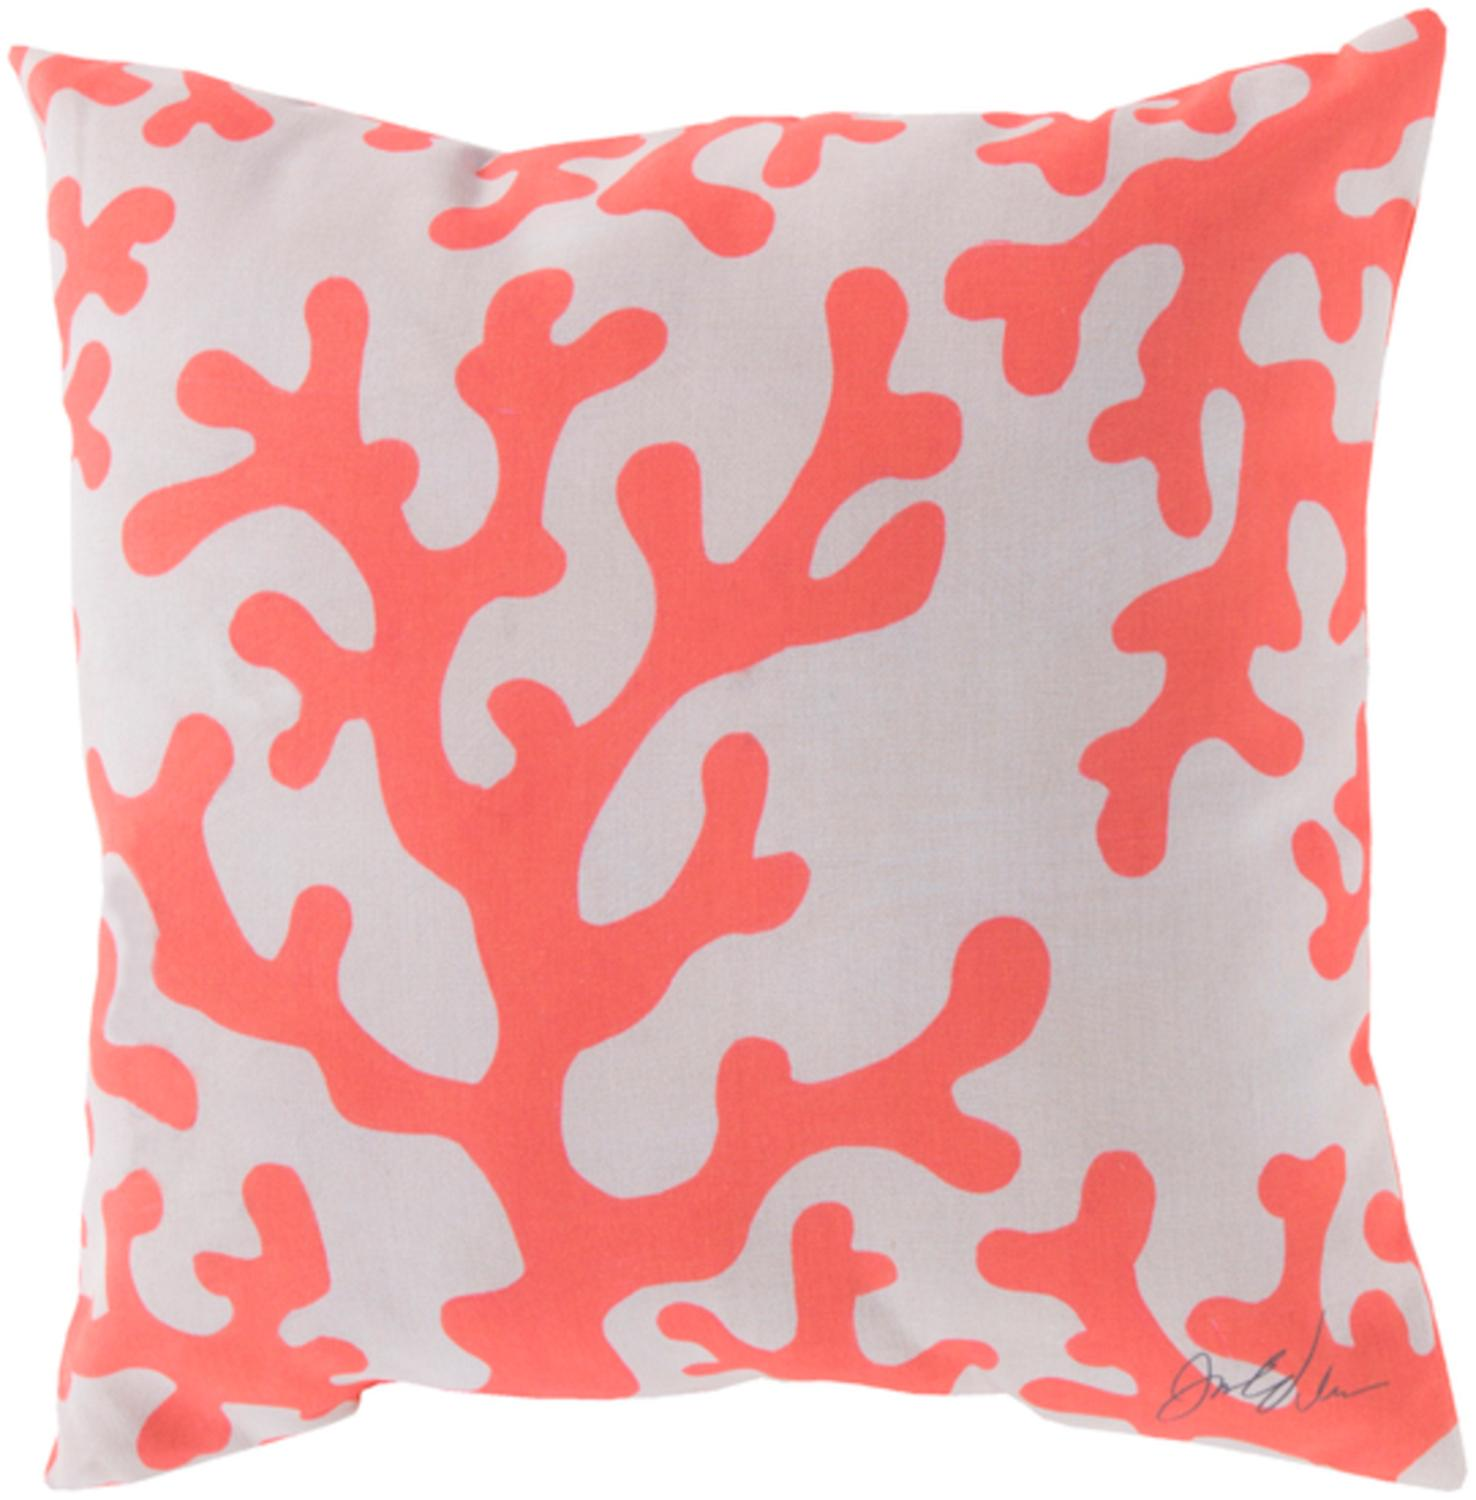 18 Coral Pink And Off White Coral Seas Square Outdoor Throw Pillow